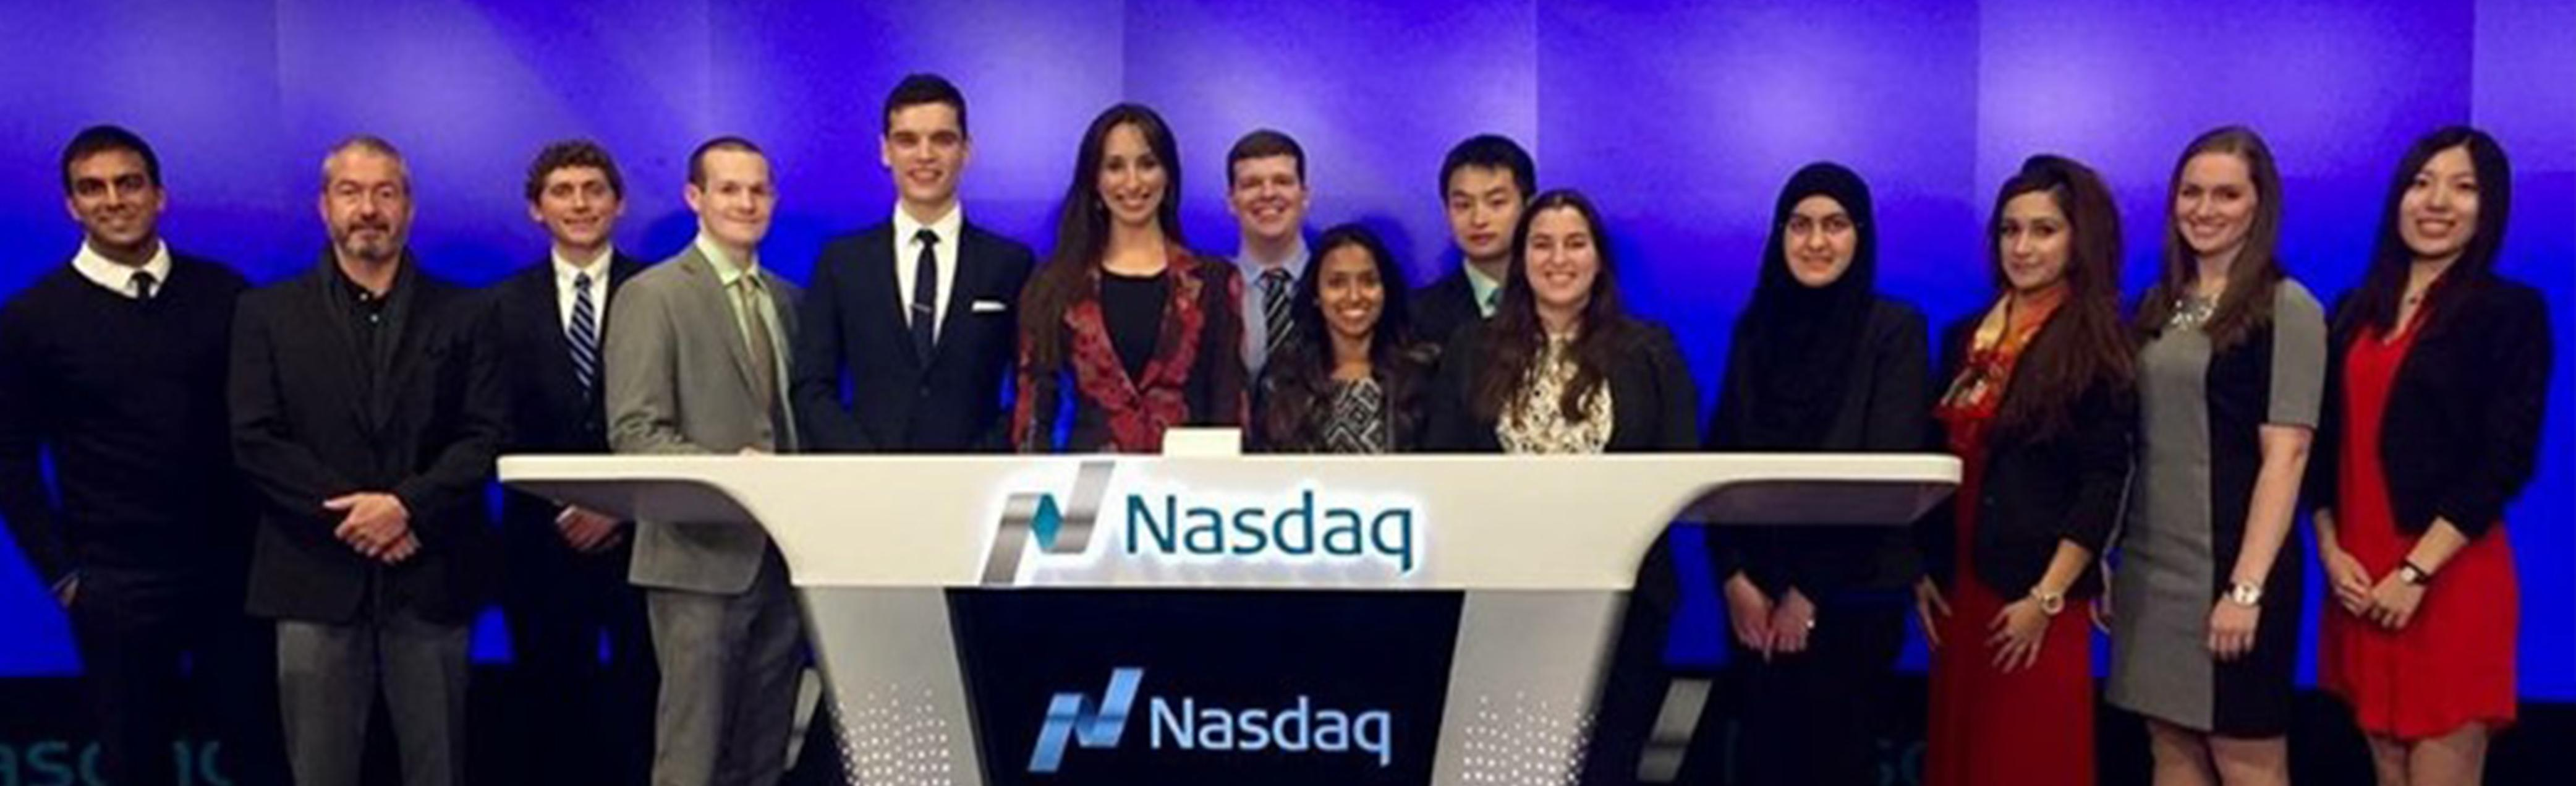 MBA Association Attends Closing Bell Ceremony at NASDAQ